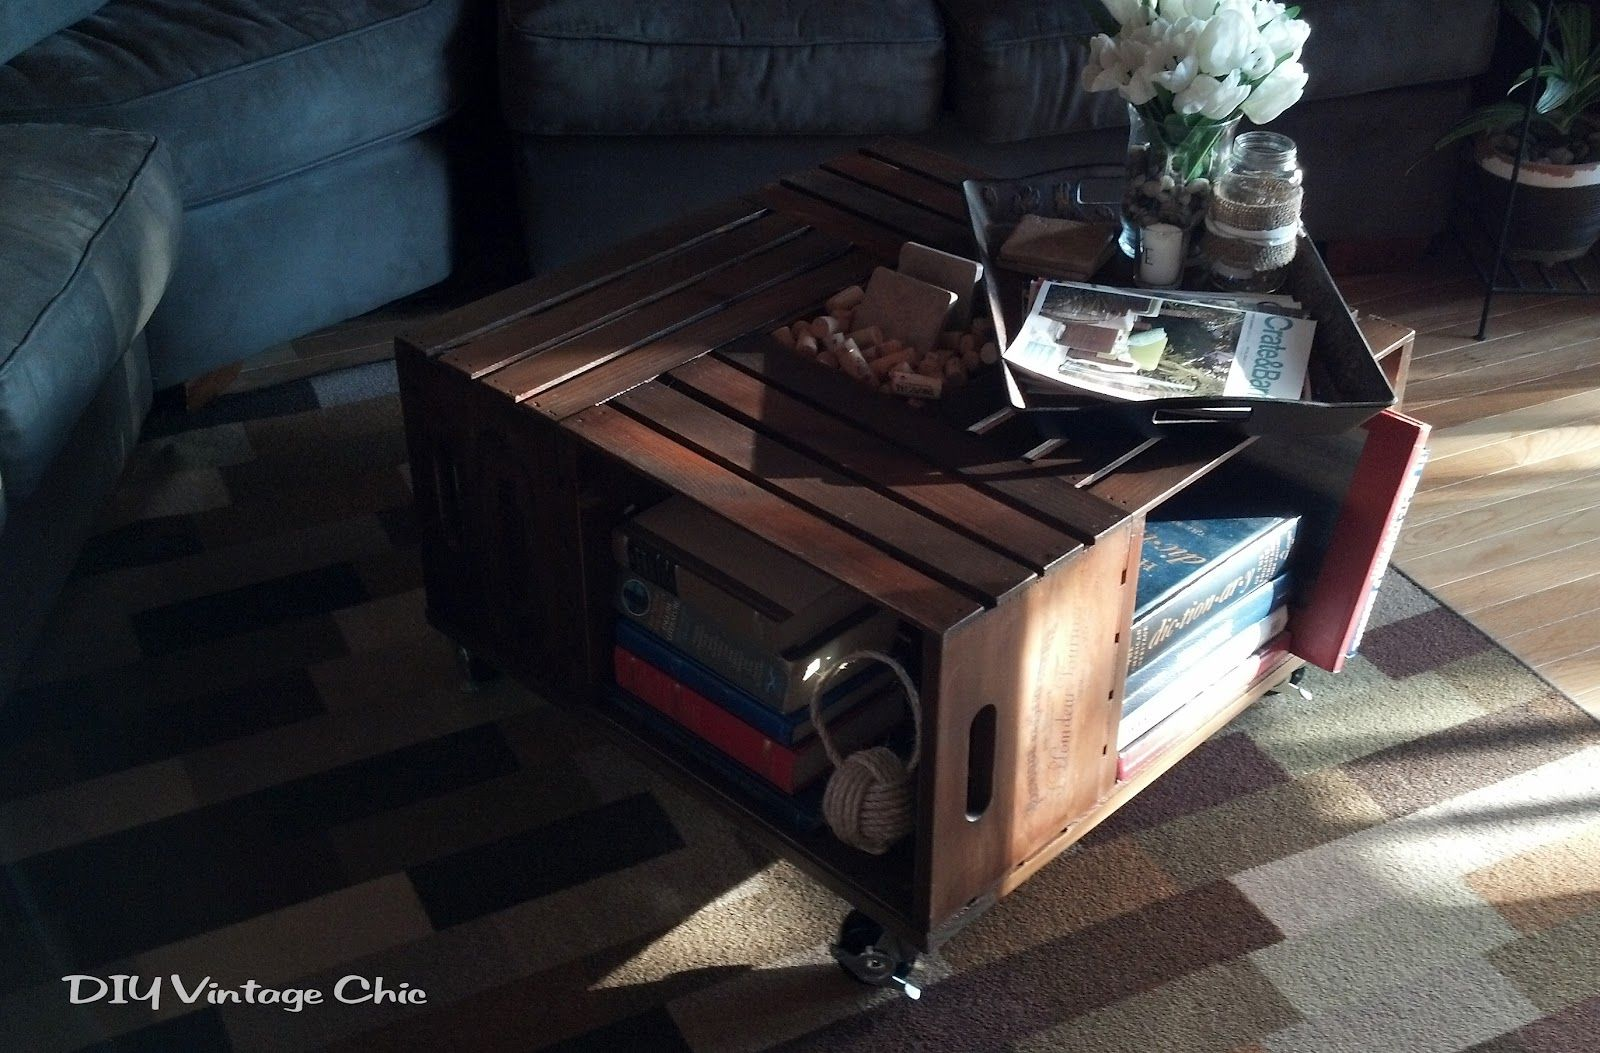 Diy vintage chic vintage wine crate coffee table cool ideas